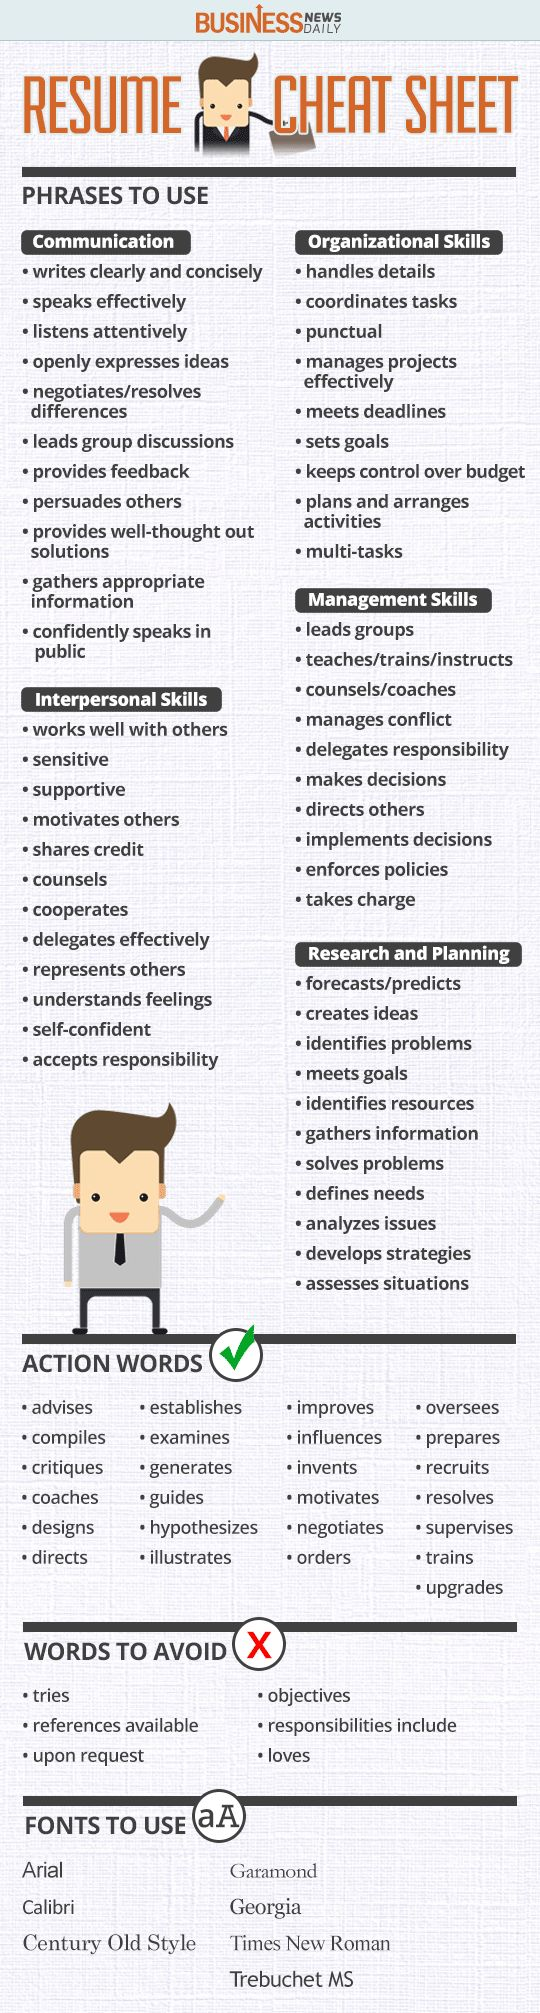 Opposenewapstandardsus  Nice  Ideas About Resume On Pinterest  Cv Format Resume Cv And  With Hot Resume Cheat Sheet Infographic Andrews Almost Done With A Complete Unit On Employment Which With Cool Generic Resume Cover Letter Also Career Summary Resume In Addition Physical Therapy Assistant Resume And Hr Resume Objective As Well As Resume Copy And Paste Additionally Restaurant Owner Resume From Pinterestcom With Opposenewapstandardsus  Hot  Ideas About Resume On Pinterest  Cv Format Resume Cv And  With Cool Resume Cheat Sheet Infographic Andrews Almost Done With A Complete Unit On Employment Which And Nice Generic Resume Cover Letter Also Career Summary Resume In Addition Physical Therapy Assistant Resume From Pinterestcom